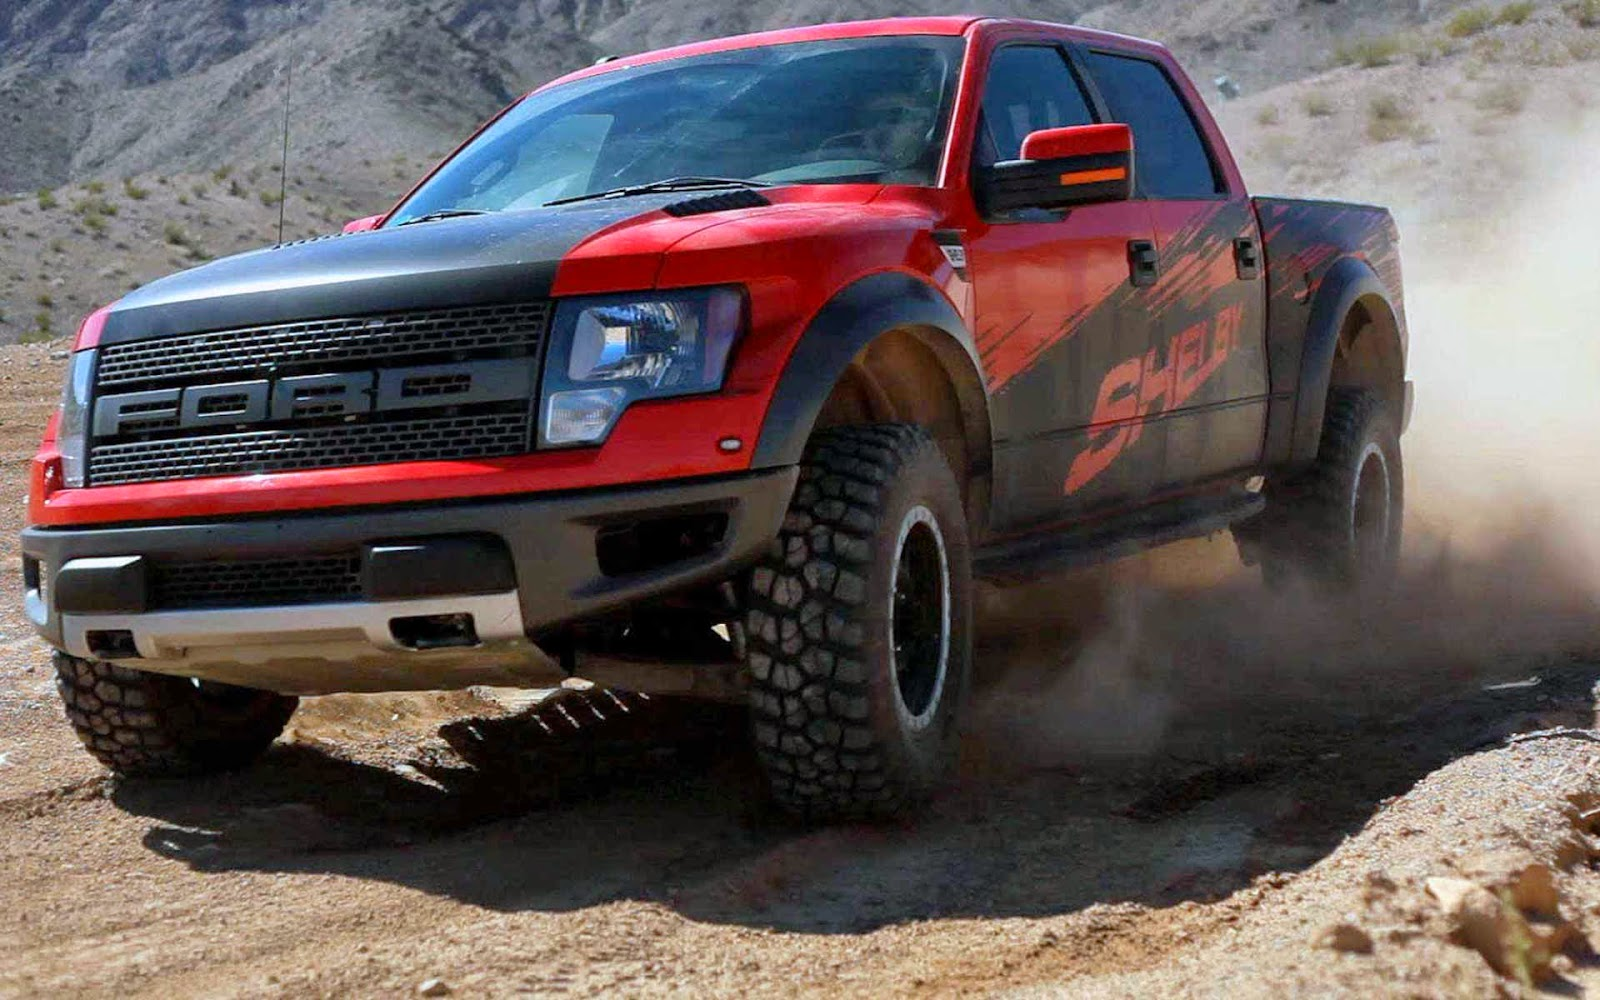 2017 Ford Raptor Rc 2017 2018 Best Car Reviews | 2017 - 2018 Best Cars ...